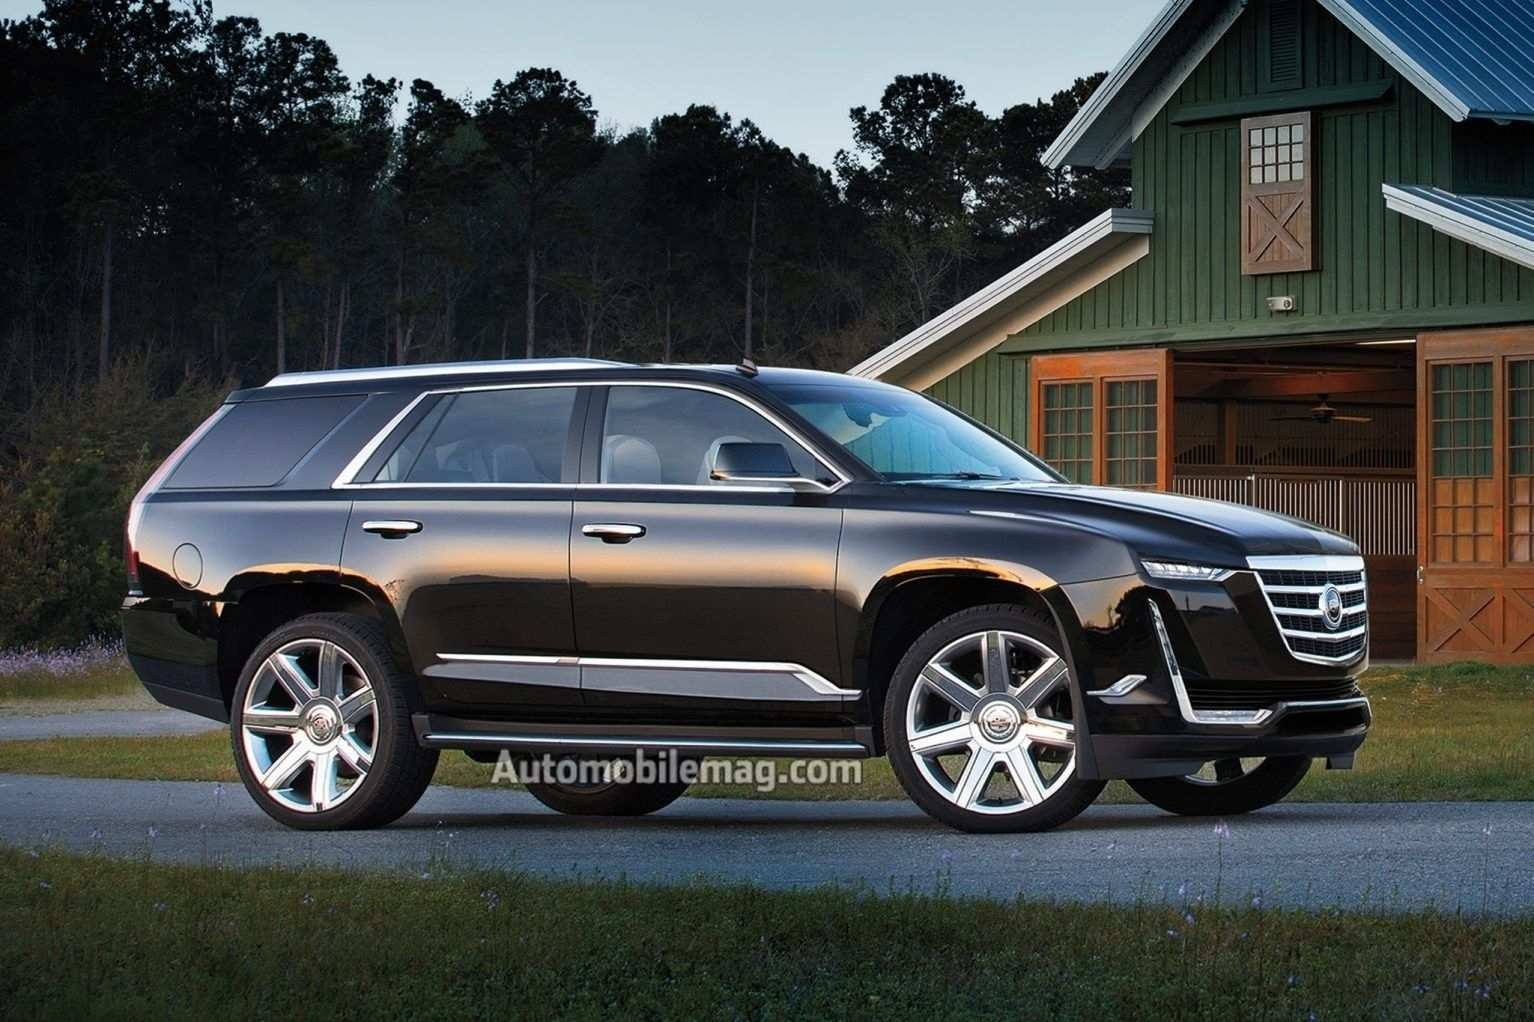 93 Best Review The Cadillac 2019 Srx Review And Release Date New Concept by The Cadillac 2019 Srx Review And Release Date